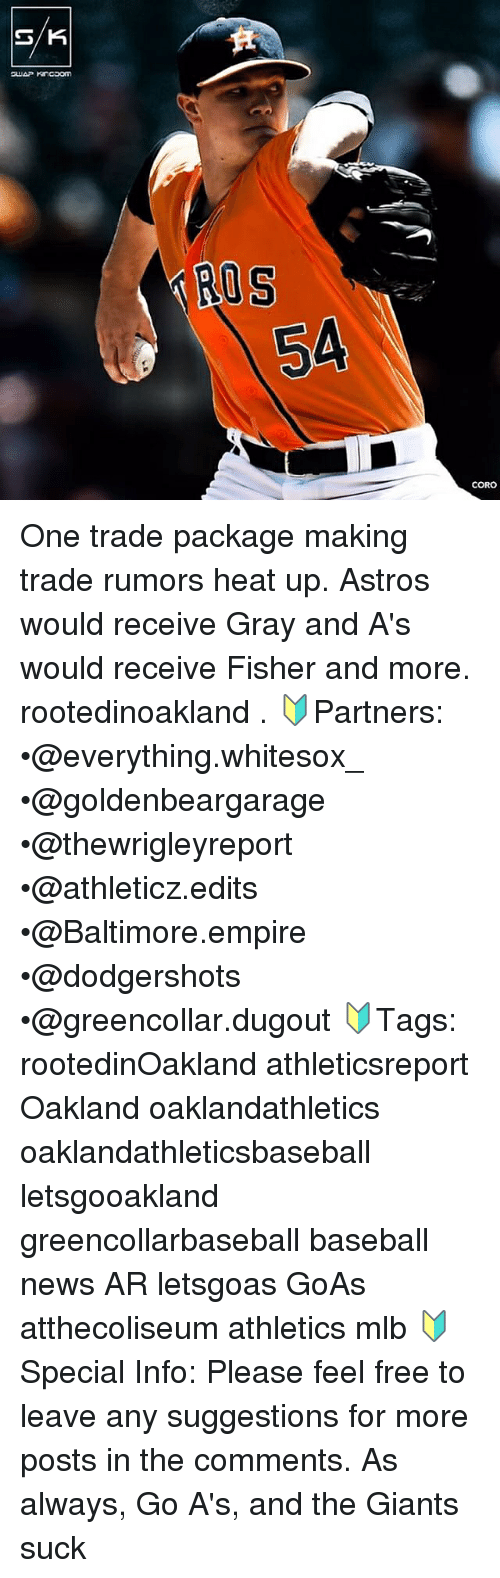 SK ROS ROS CORO One Trade Package Making Trade Rumors Heat